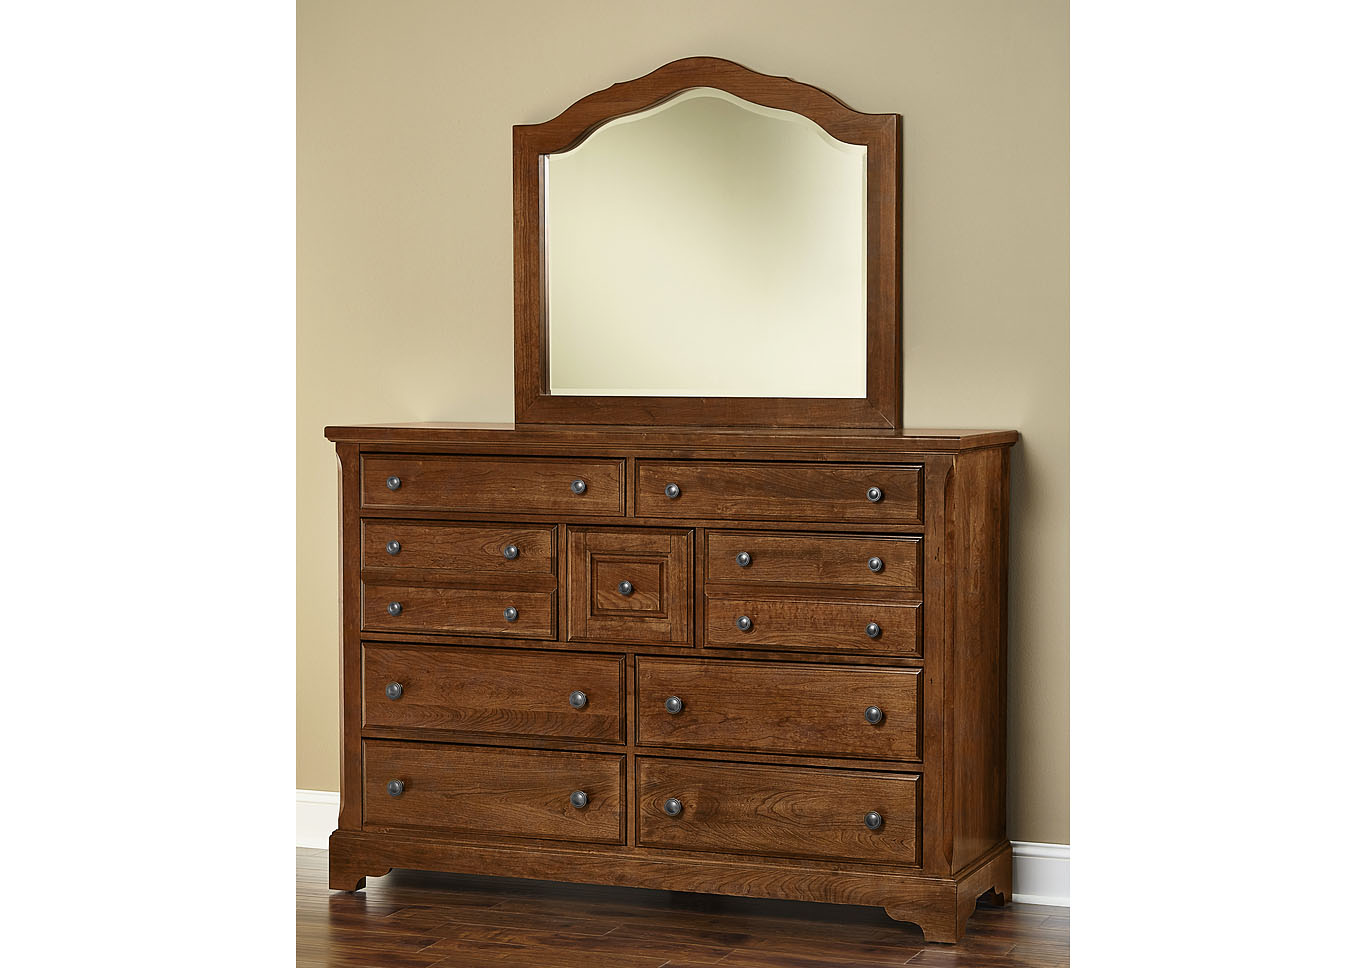 100 - Artisan Choices Amish Cherry Villa Triple Dresser - 9 Drawer,Vaughan-Bassett